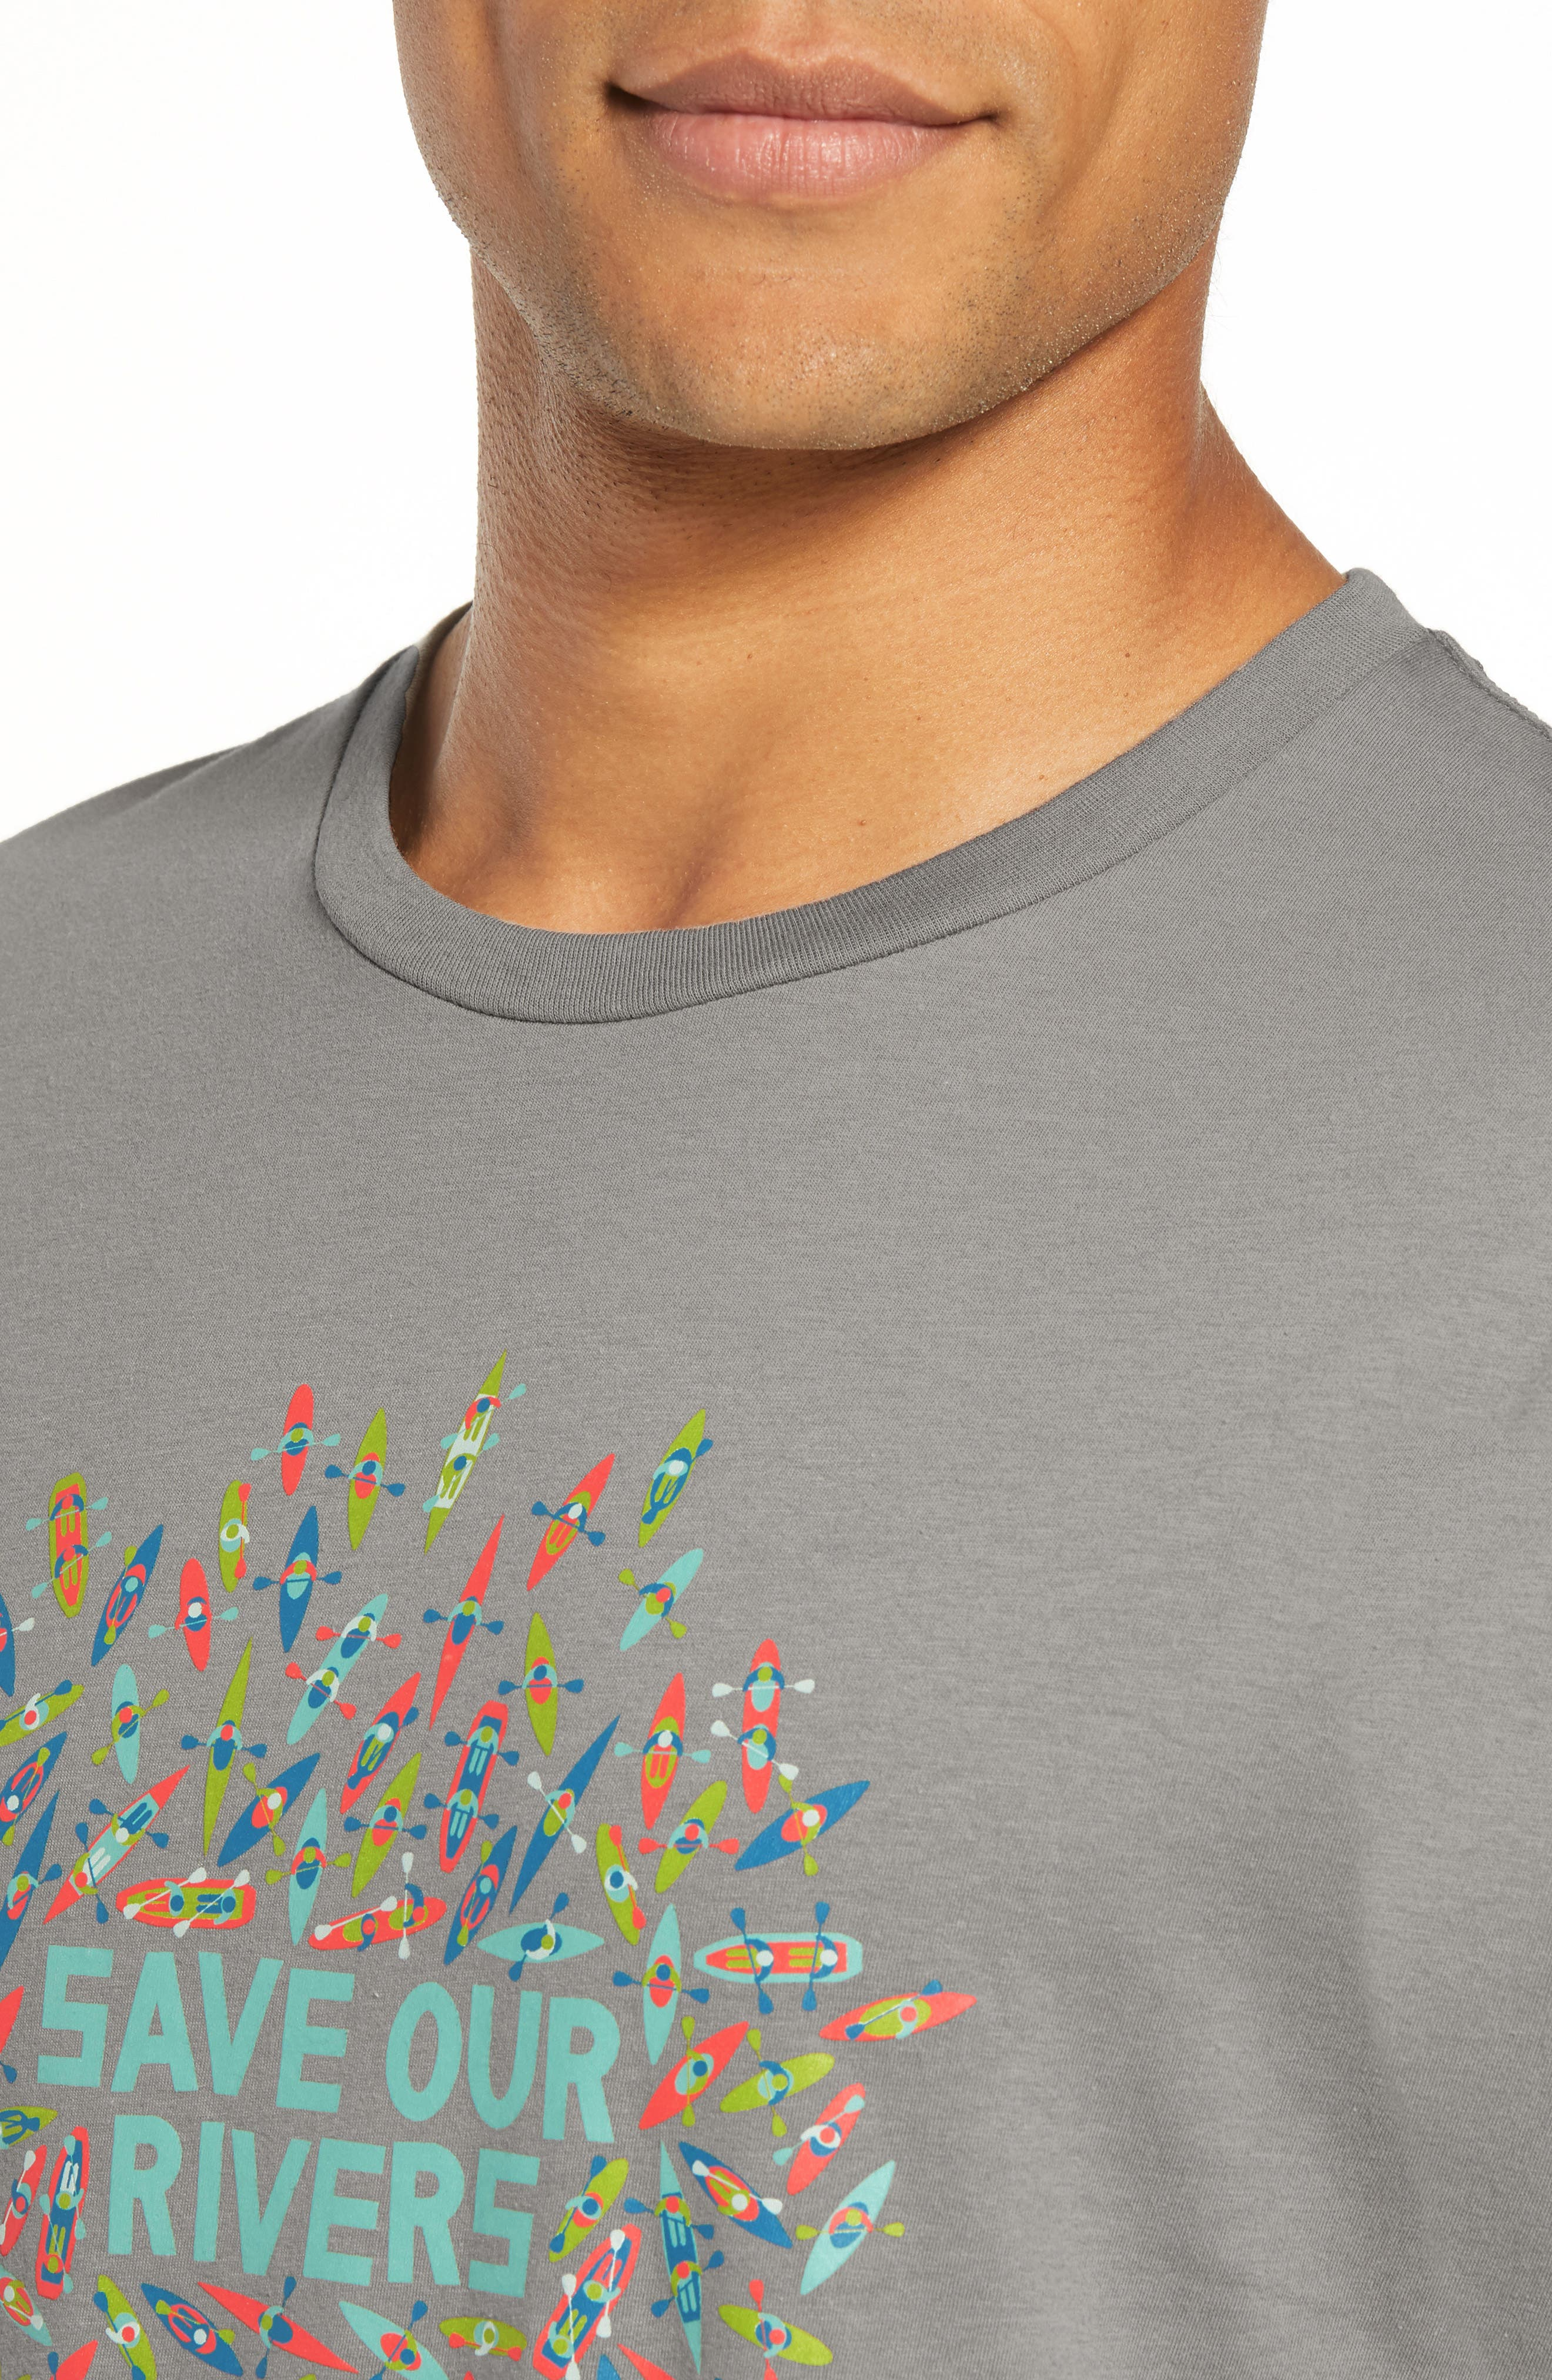 Save Our Rivers Organic Cotton Graphic T-Shirt,                             Alternate thumbnail 4, color,                             FEATHER GREY